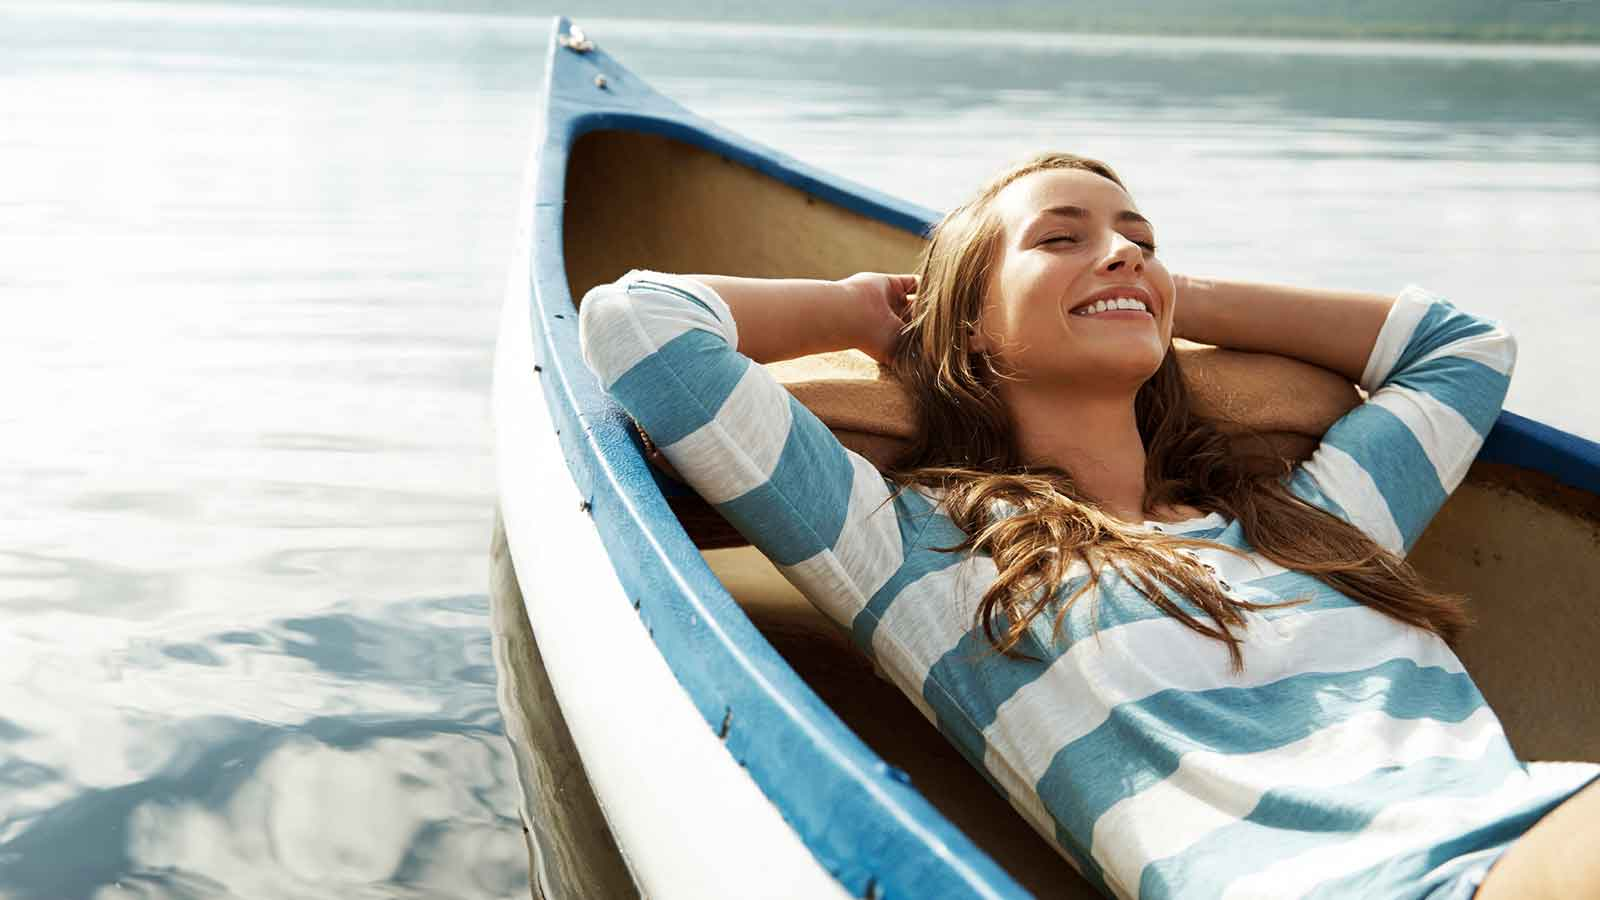 woman-relaxing-on-the-boat-1600x900